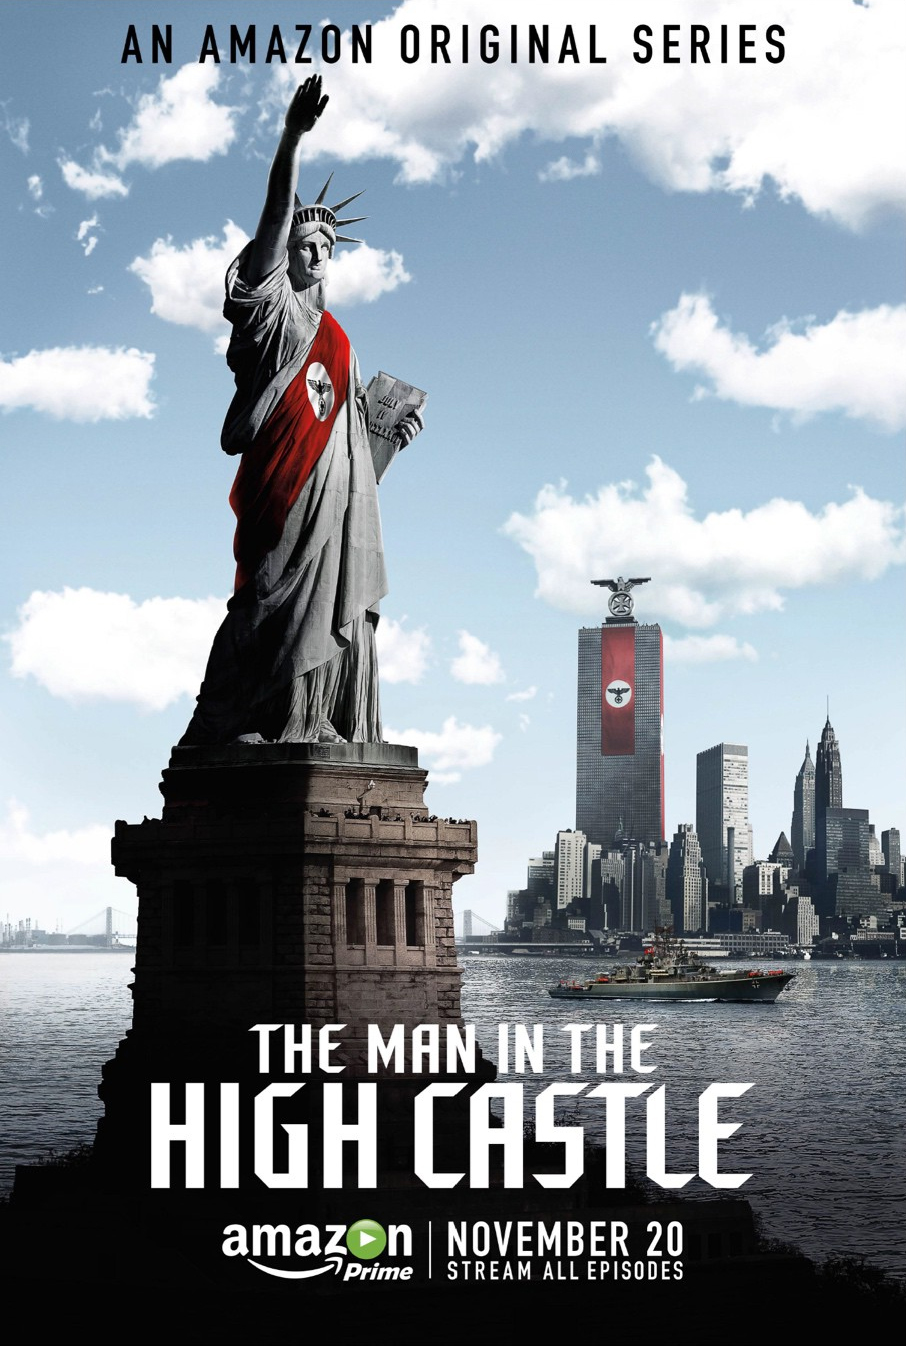 The_Man_in_the_High_Castle_(série)